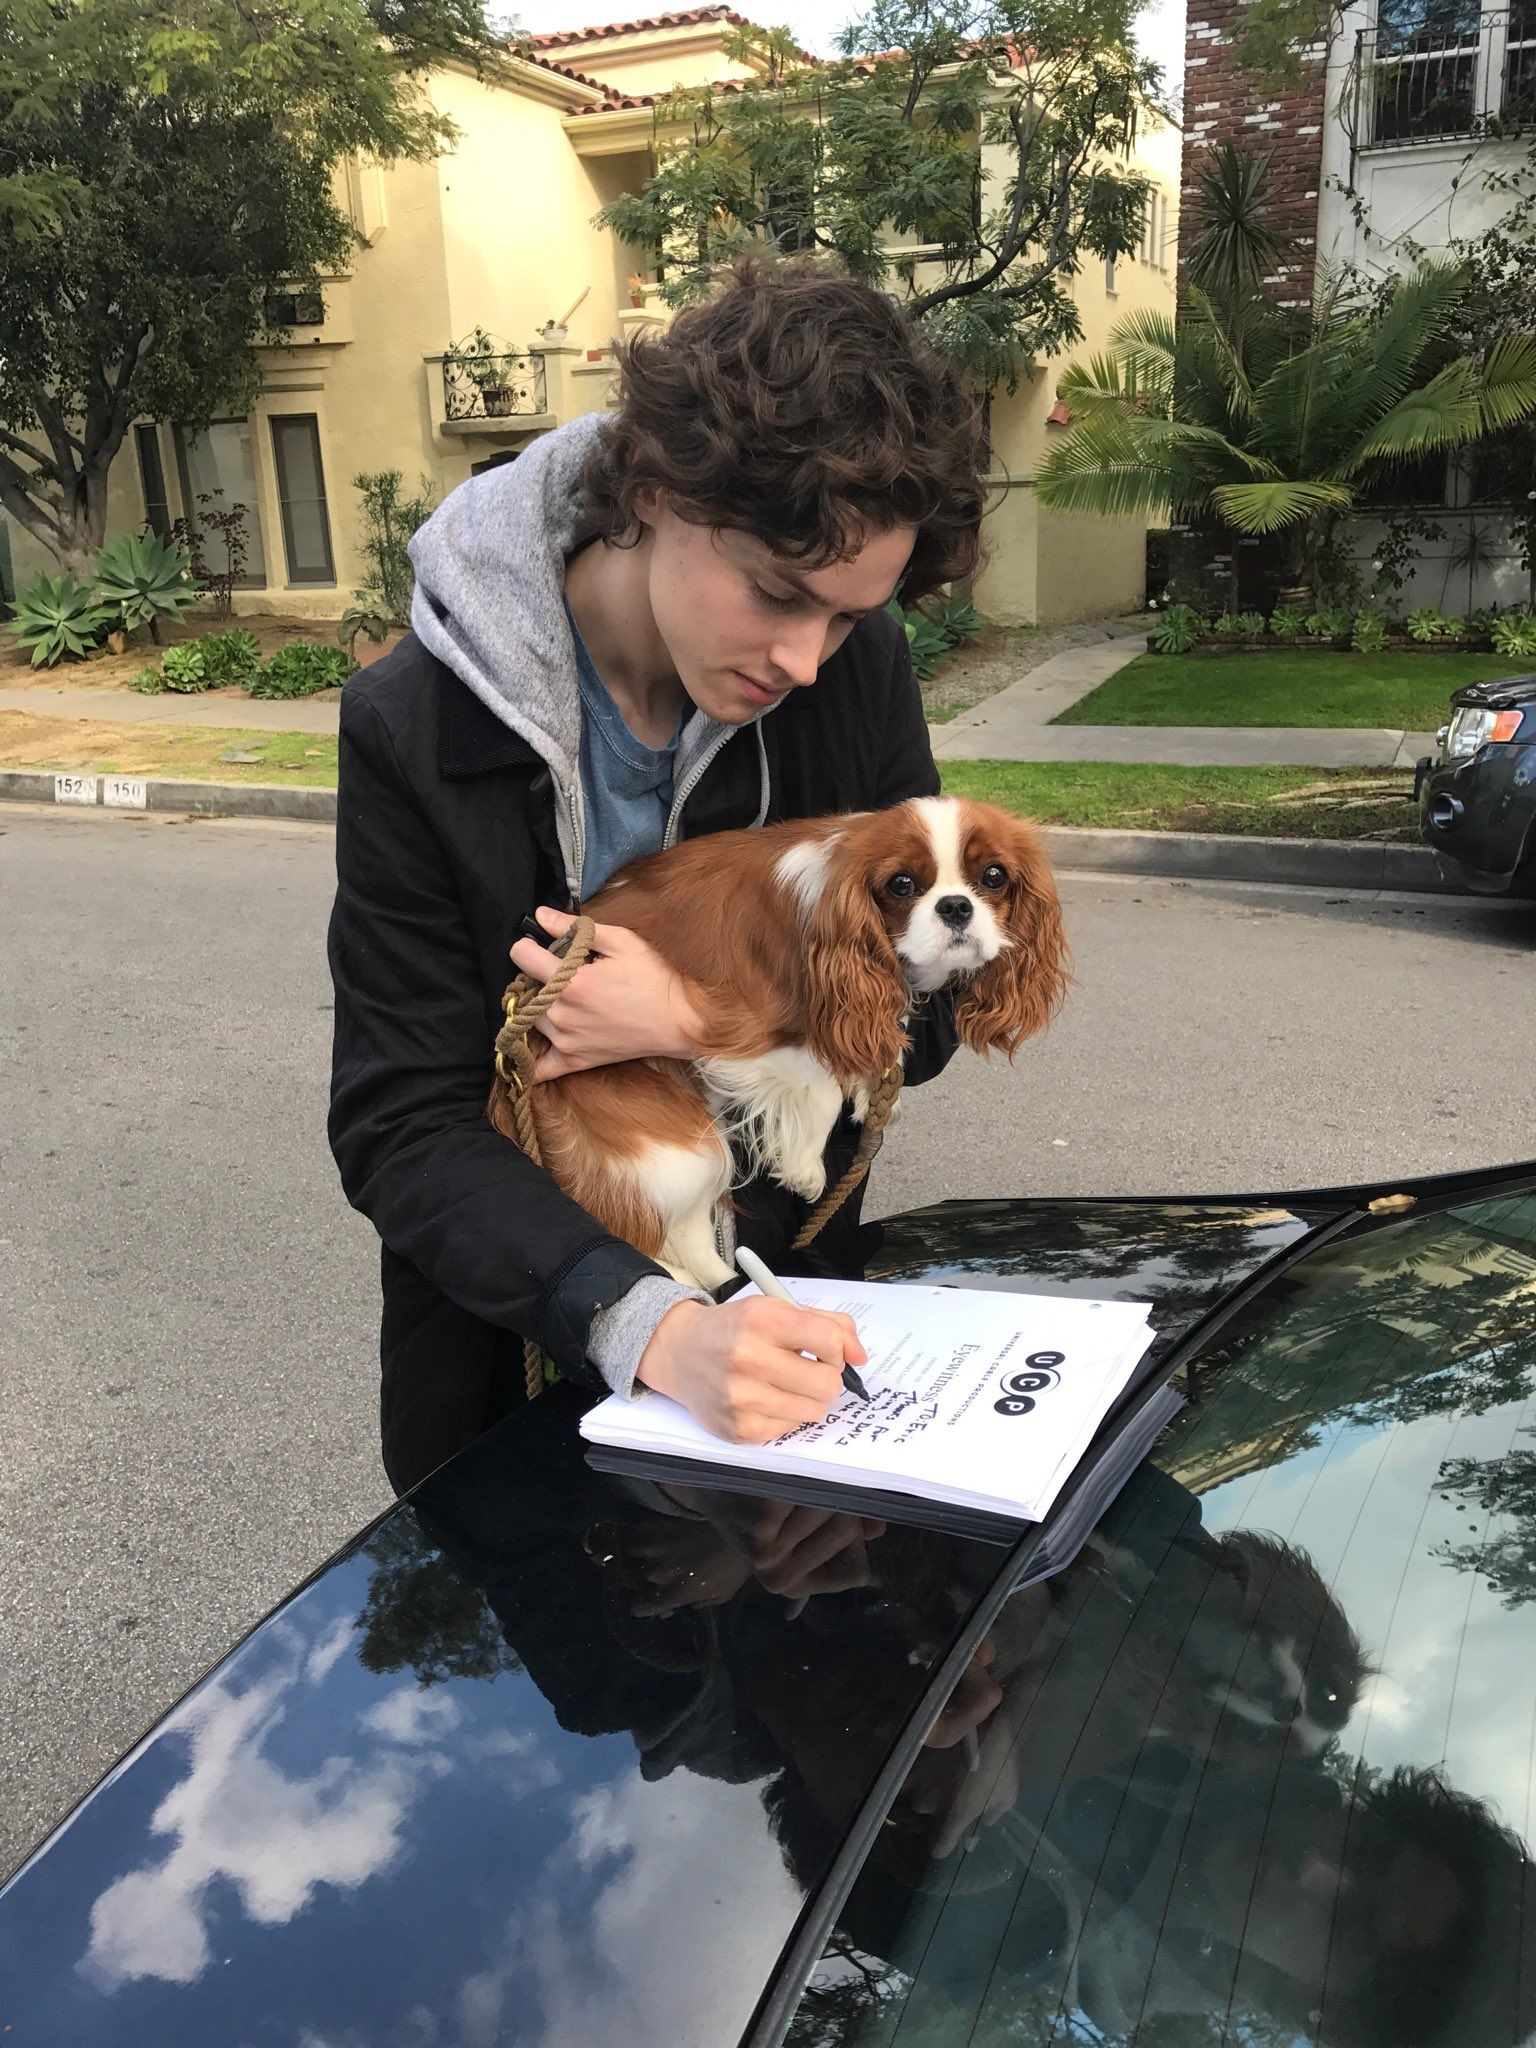 """Tyler Young on Twitter: """"Big shout out to @judgenatalie @eyewitness_wiki & @Gomez_eric13 who won signed #Eyewitness scripts! Your support throughout has been  https://t.co/8LeDu8Hkux"""""""